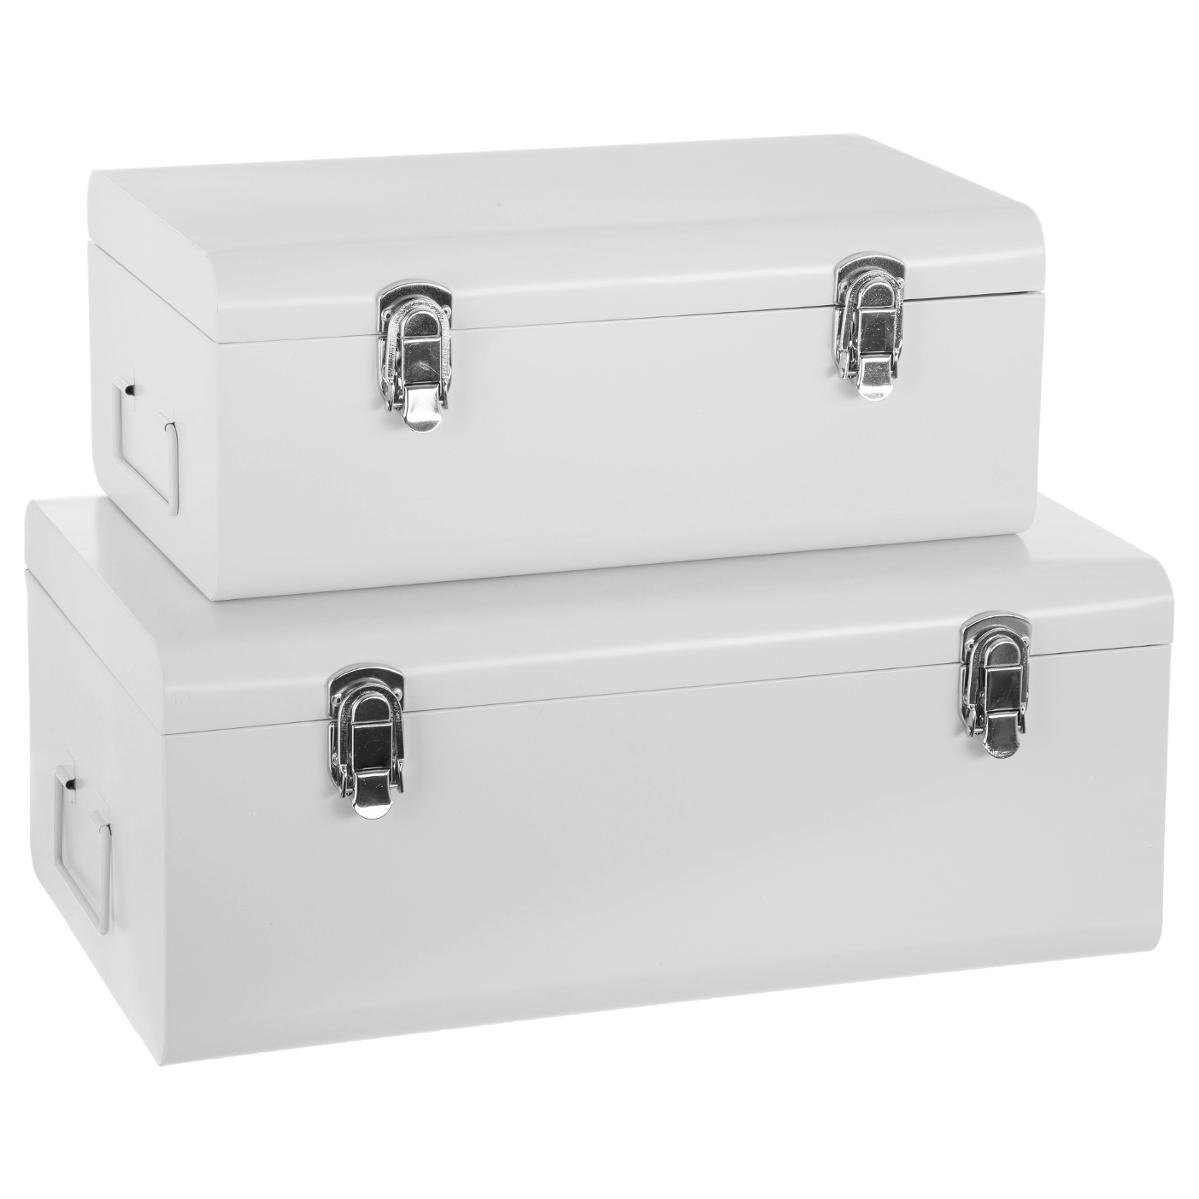 Set Of 2 Metal Storage Chests   Trunk Design   Colour White by Amazon